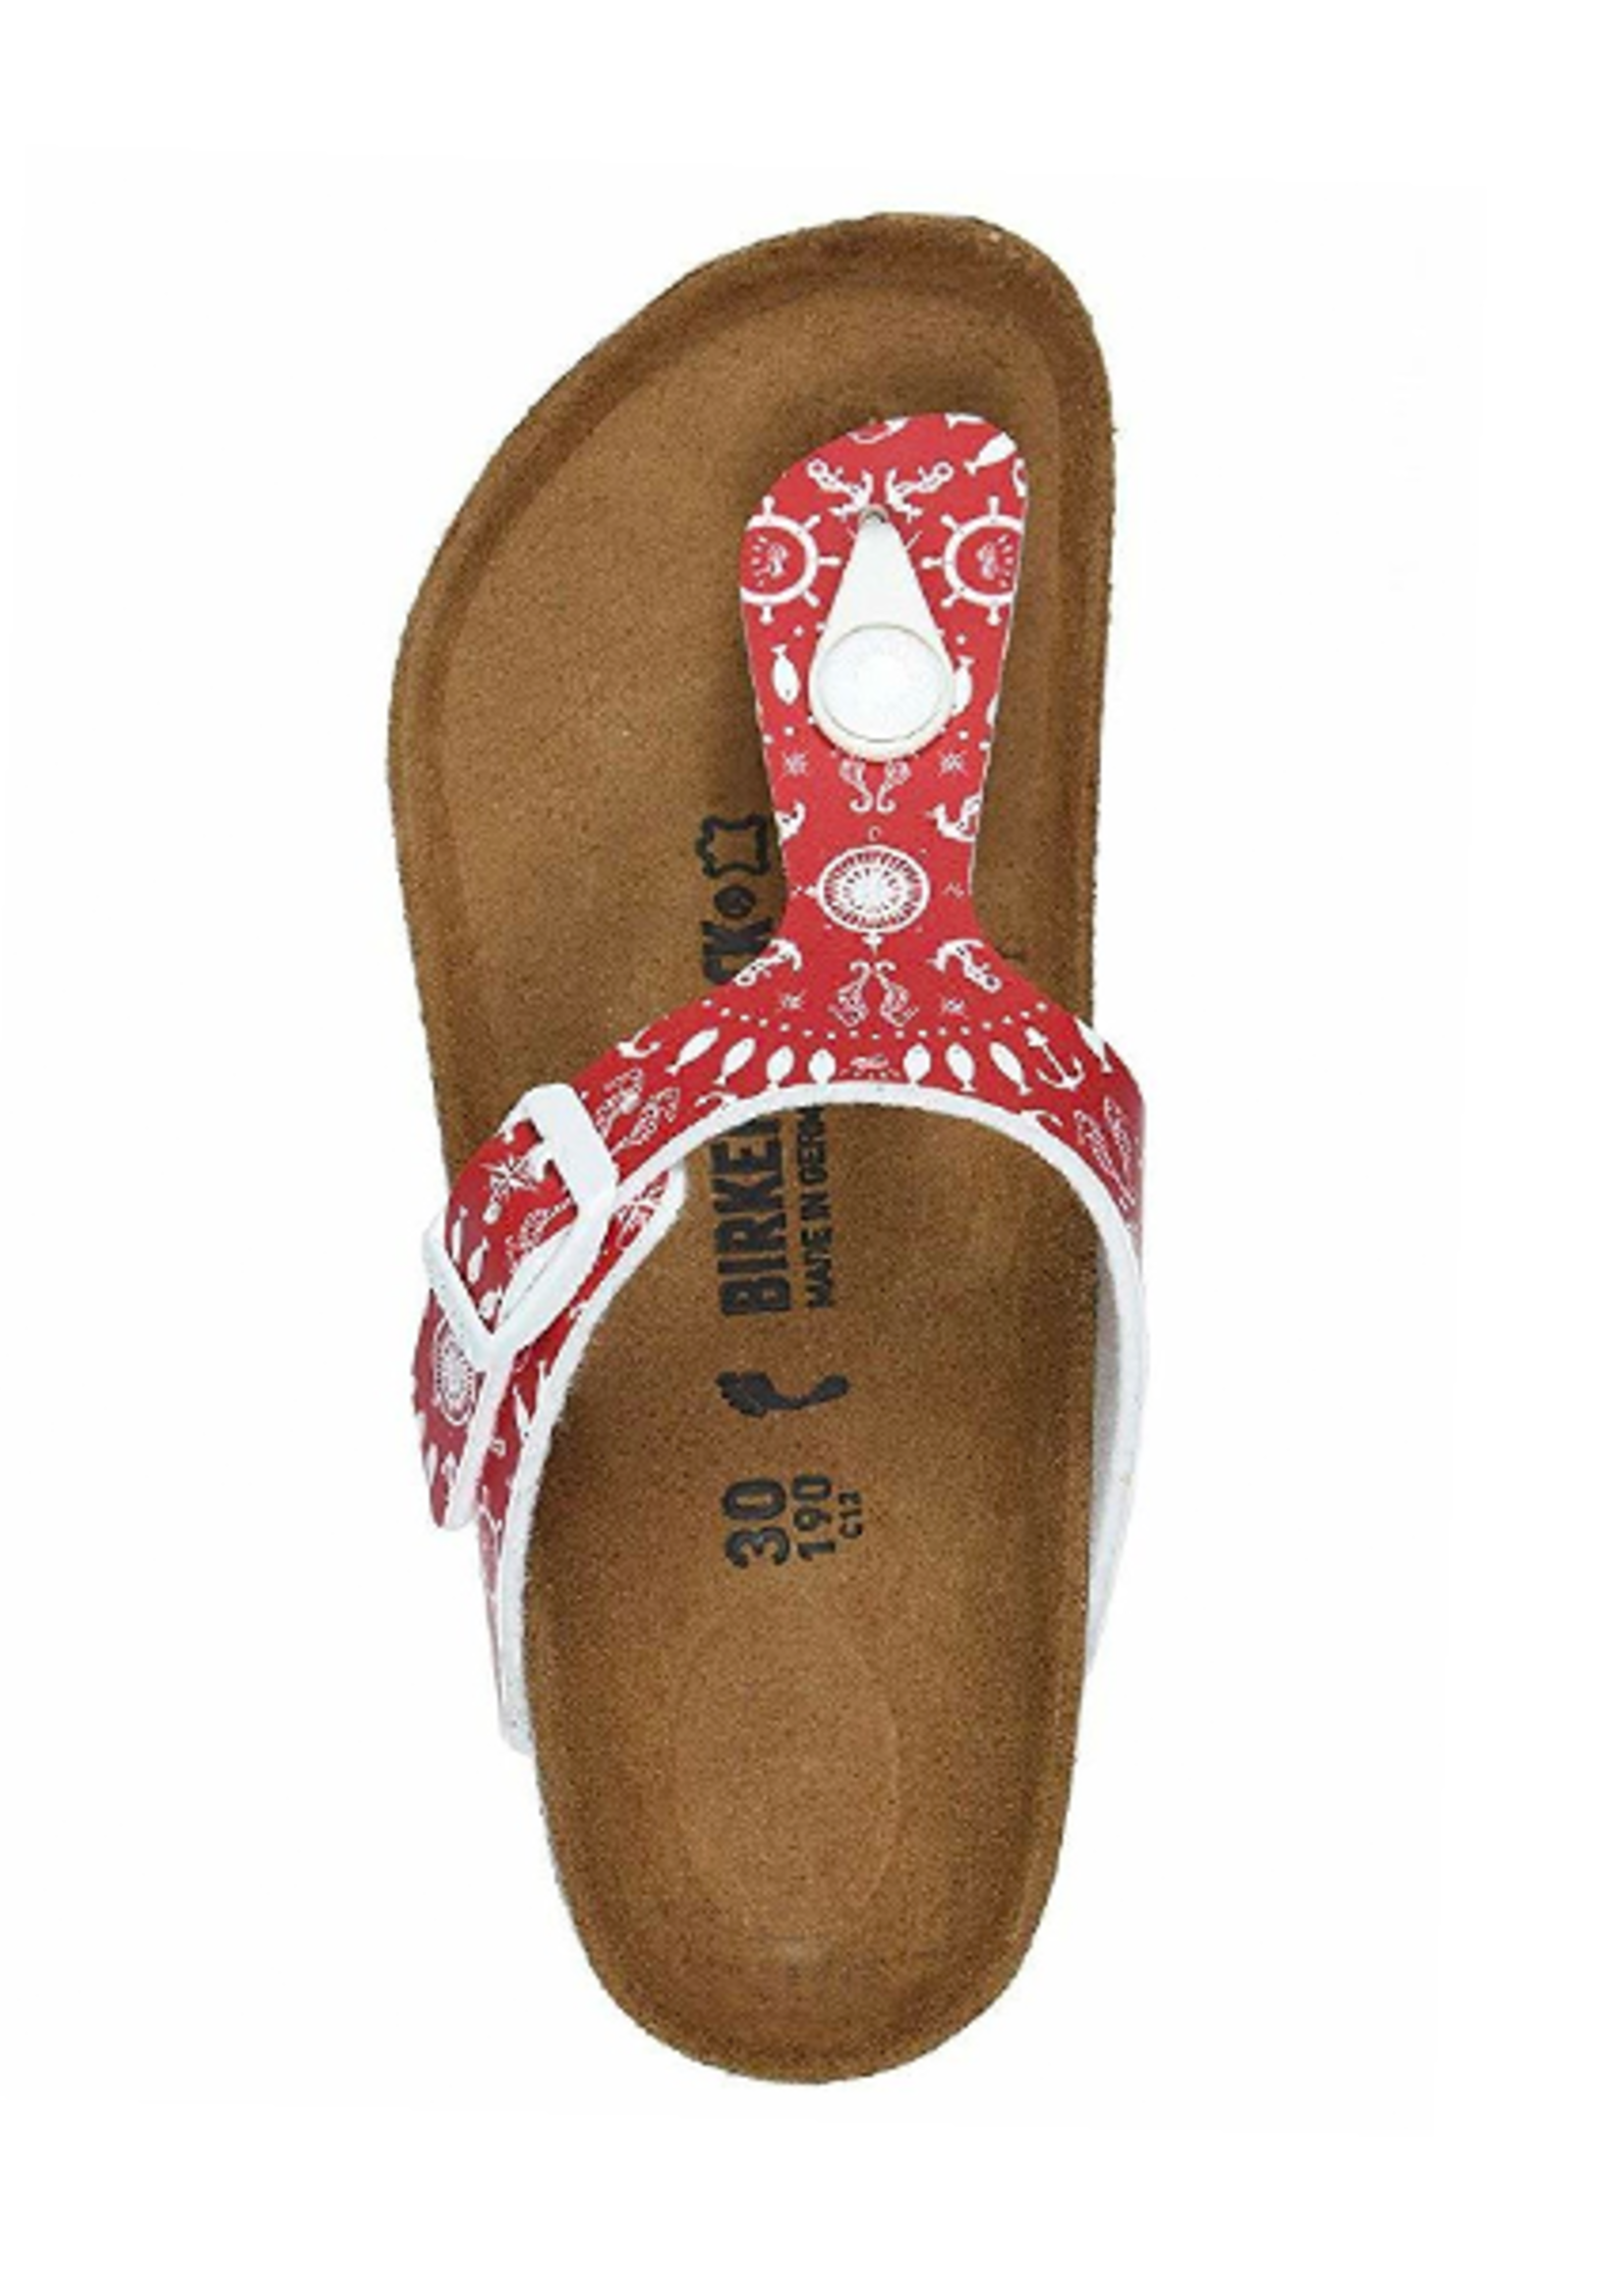 Birkenstock Gizeh Kids - Birko-Flor in Nautical Print Red (Classic Footbed - Suede Lined)